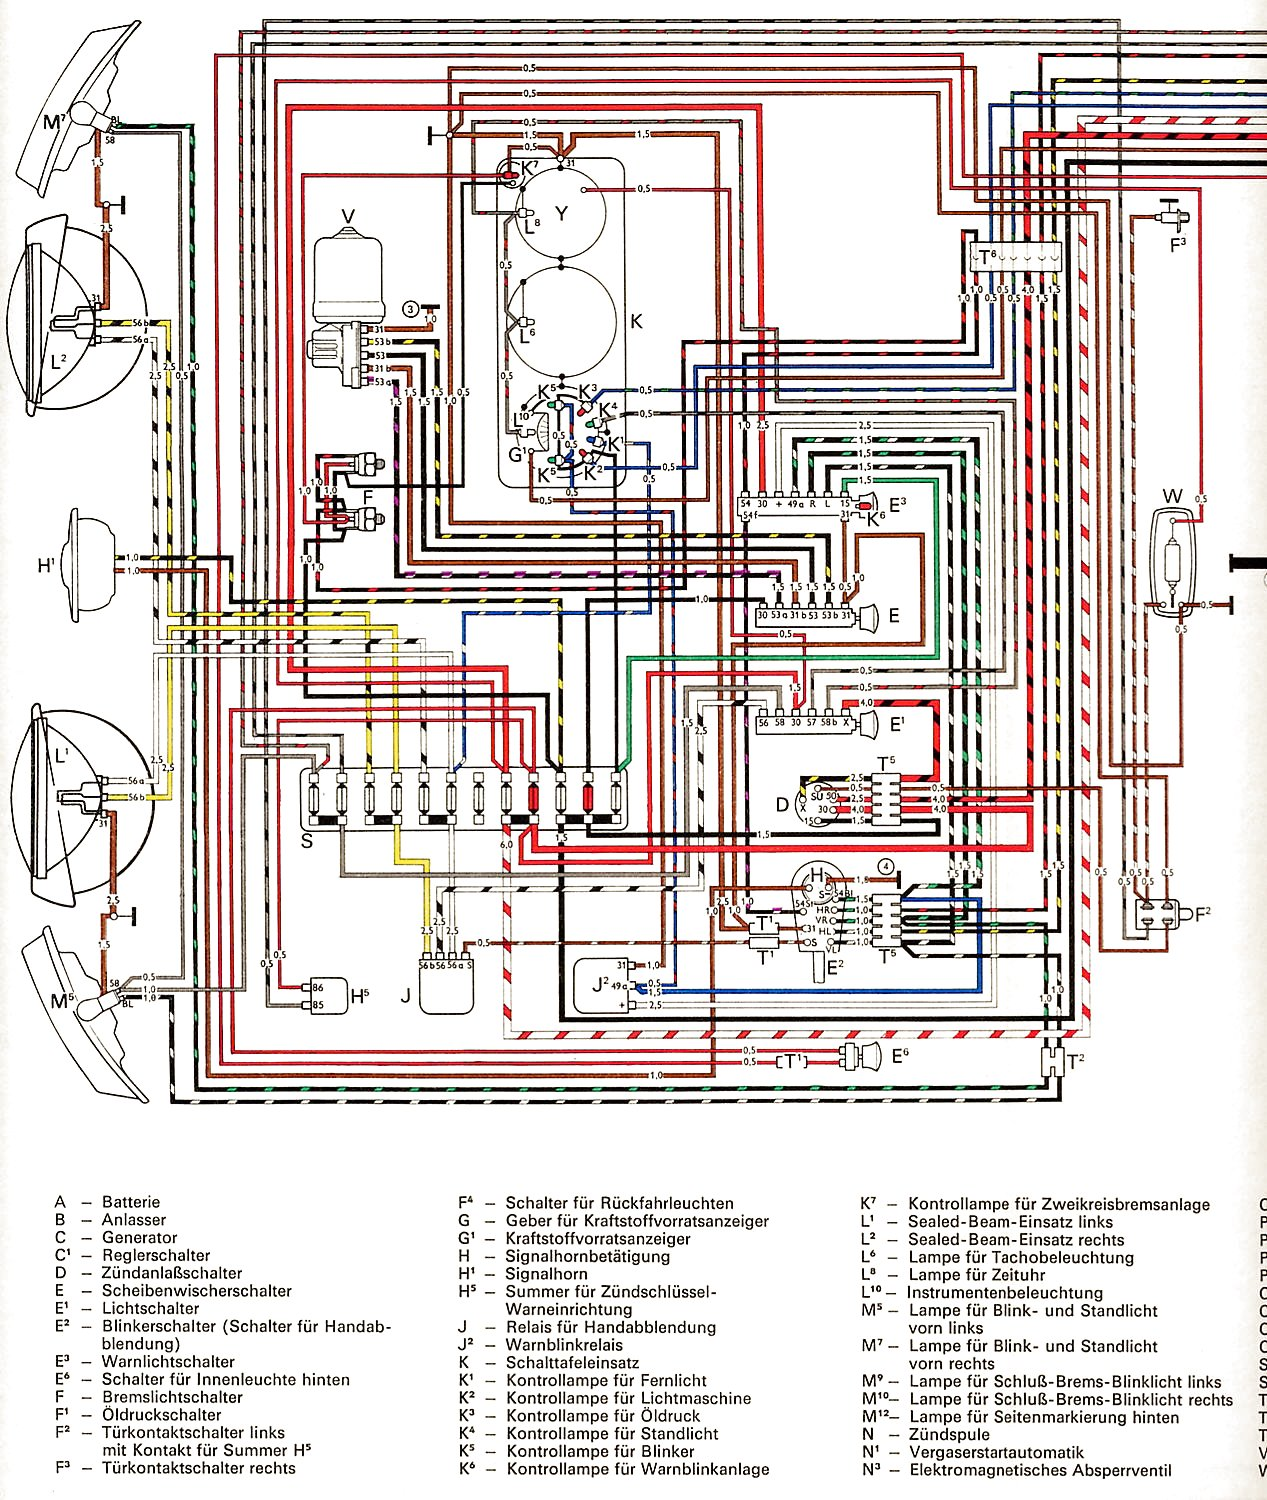 Wiring Diagram For 1975 Vw Beetle : Vw wiring diagrams